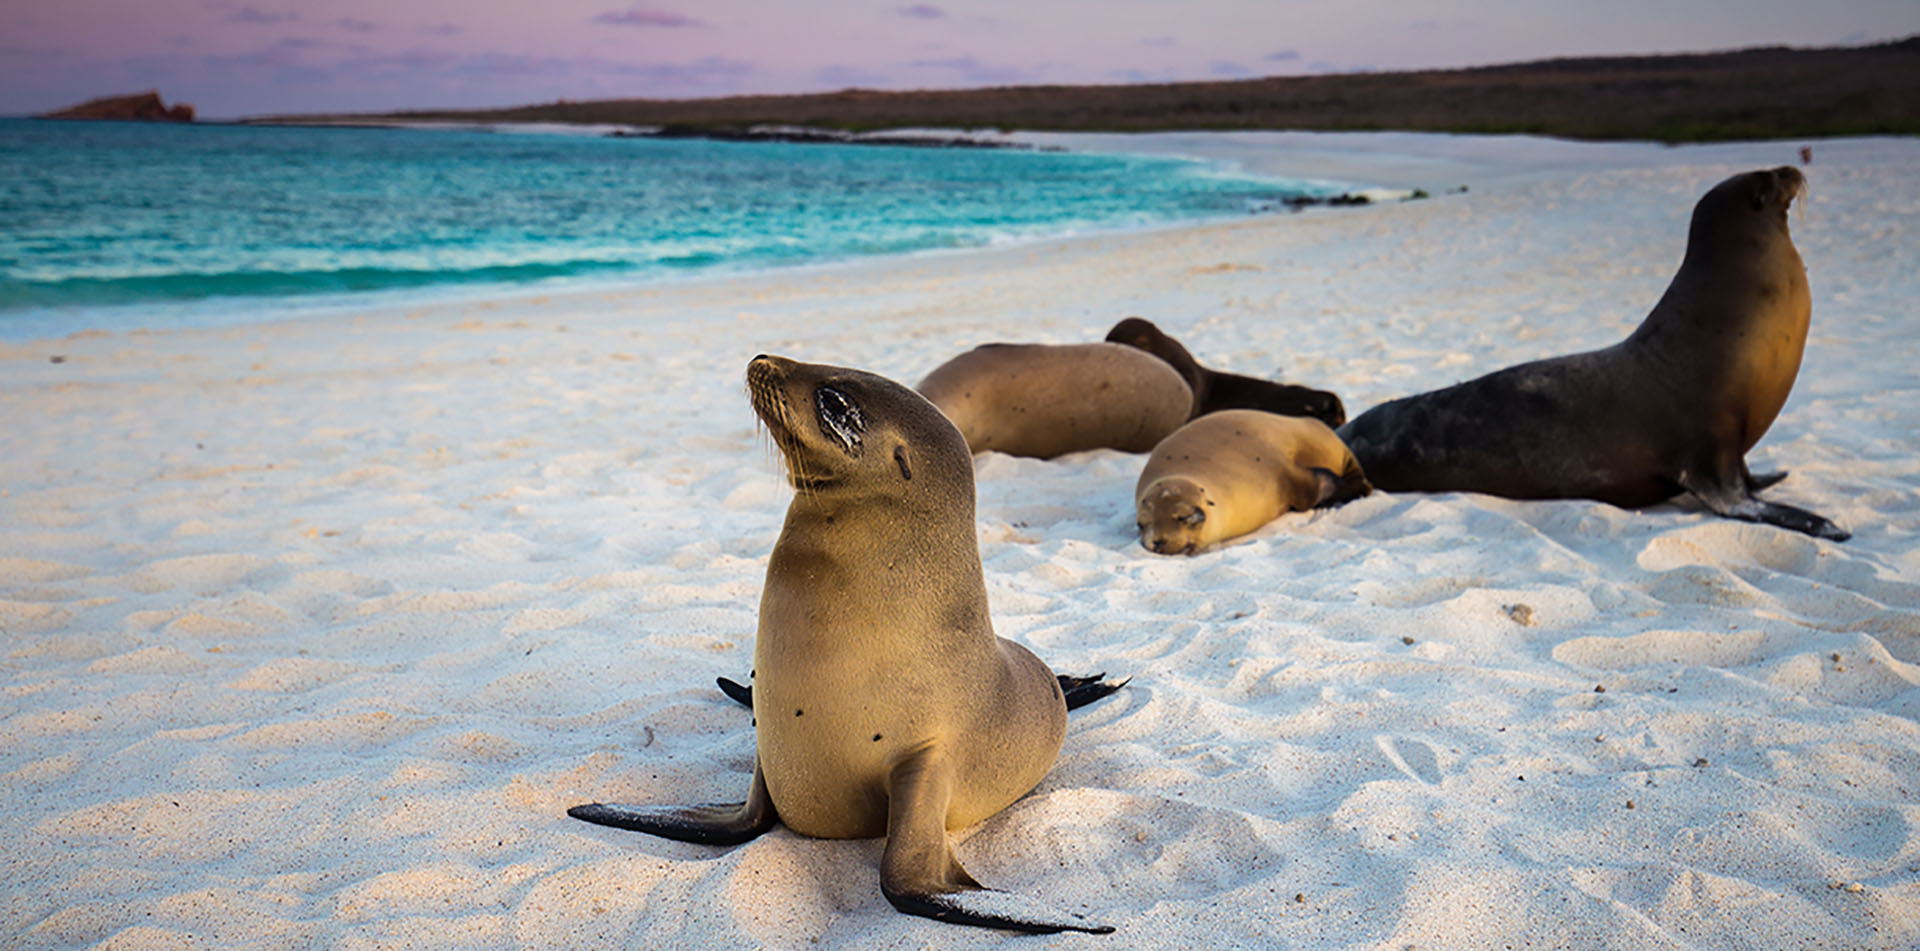 Sea Lions on a Beach, Galapagos Islands